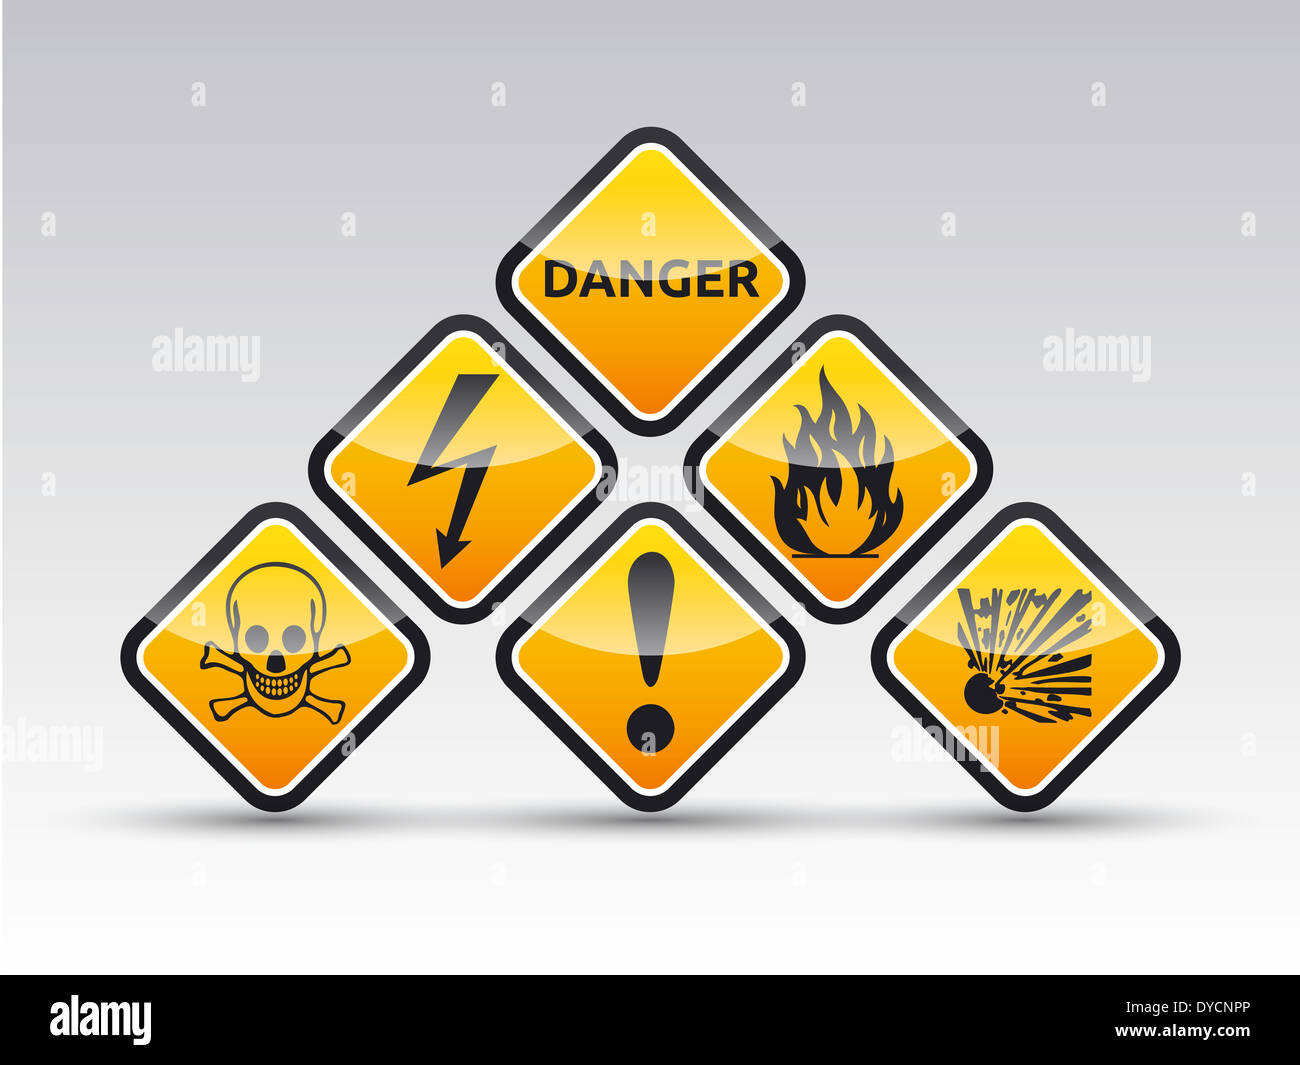 Isolated orange Danger sign collection with black border, reflection and shadow on white background Stock Photo